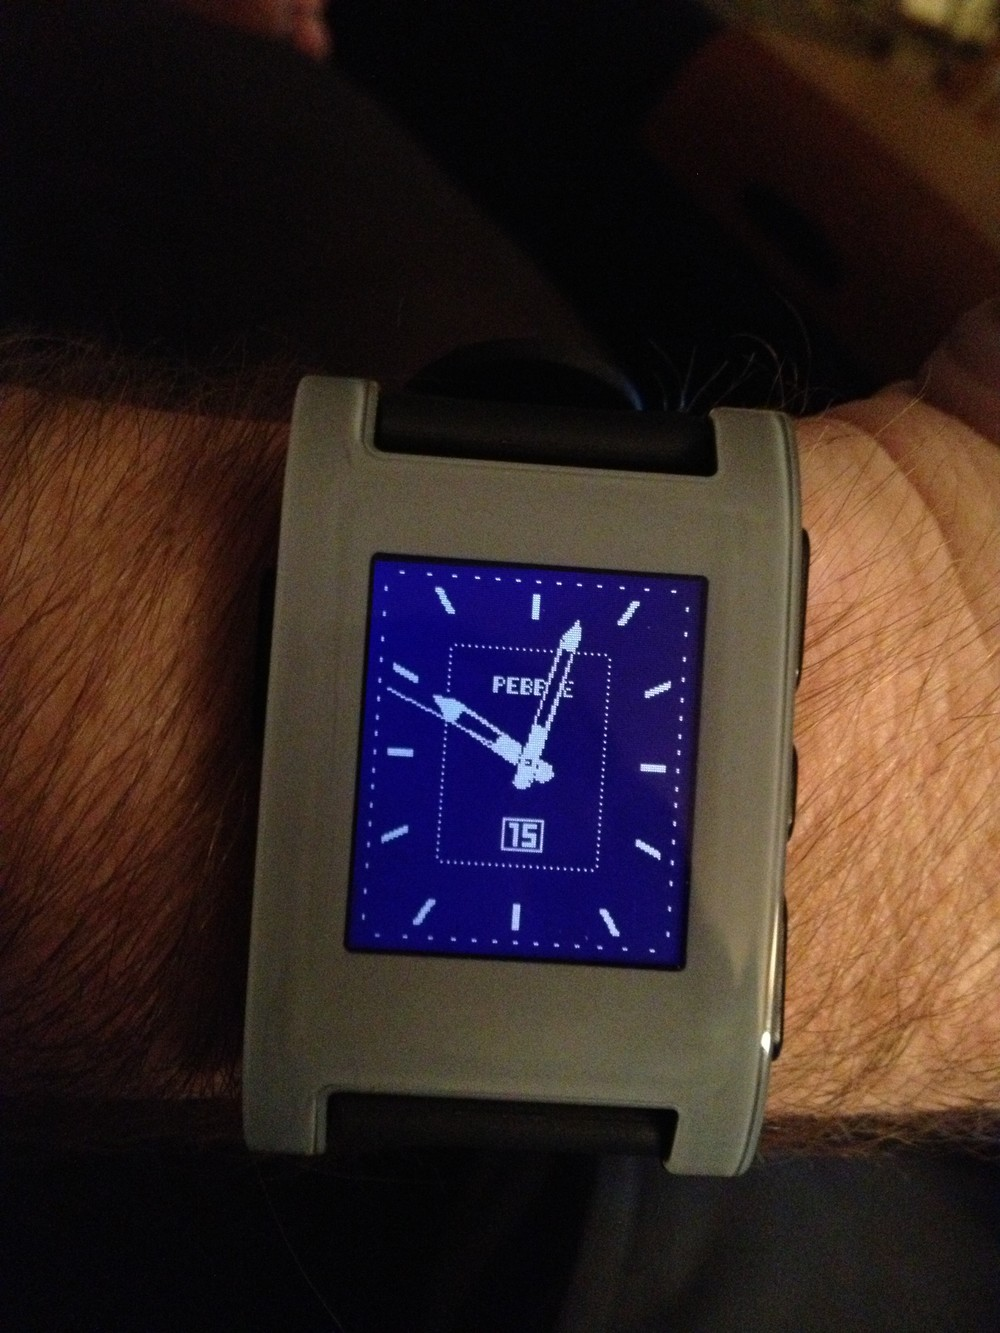 pebble-watchface-dark-e1376282995257.jpg